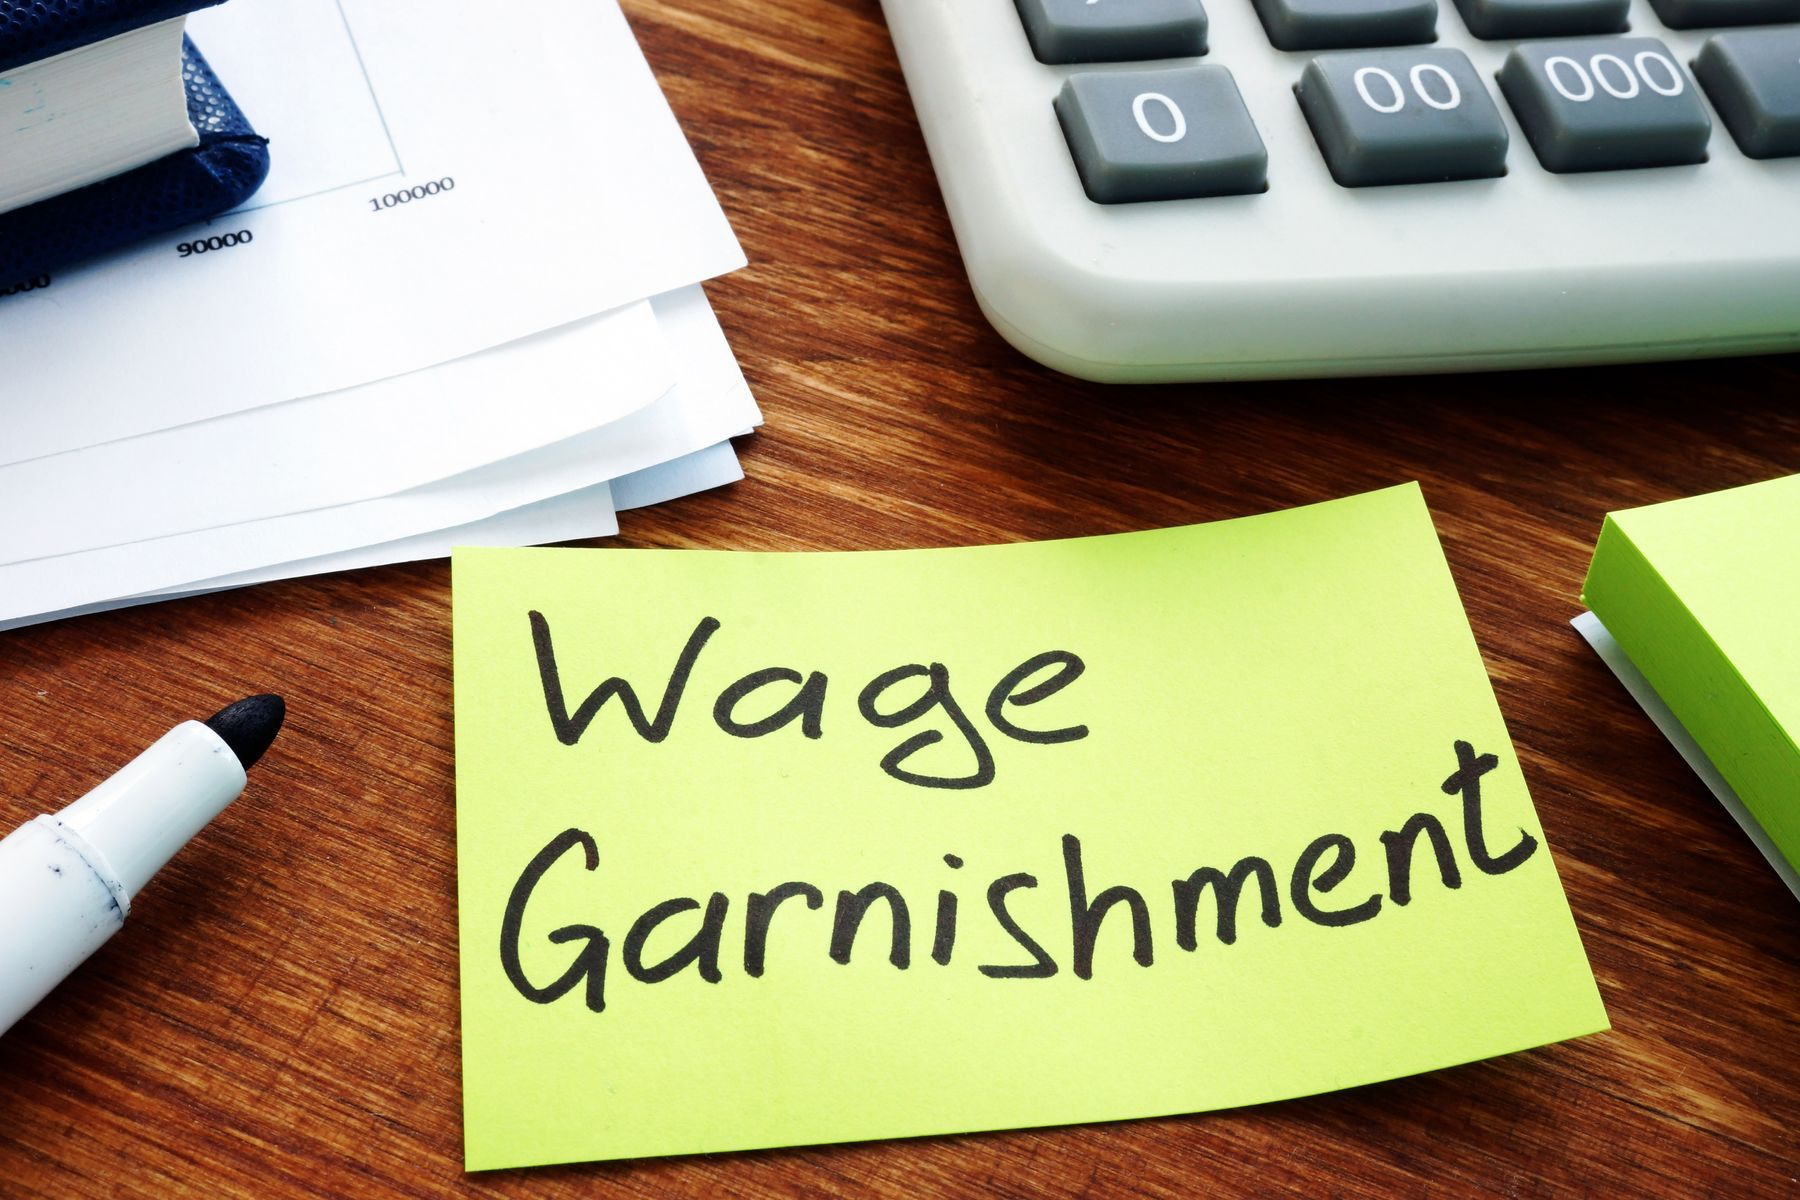 How Does Wage Garnishment Work?